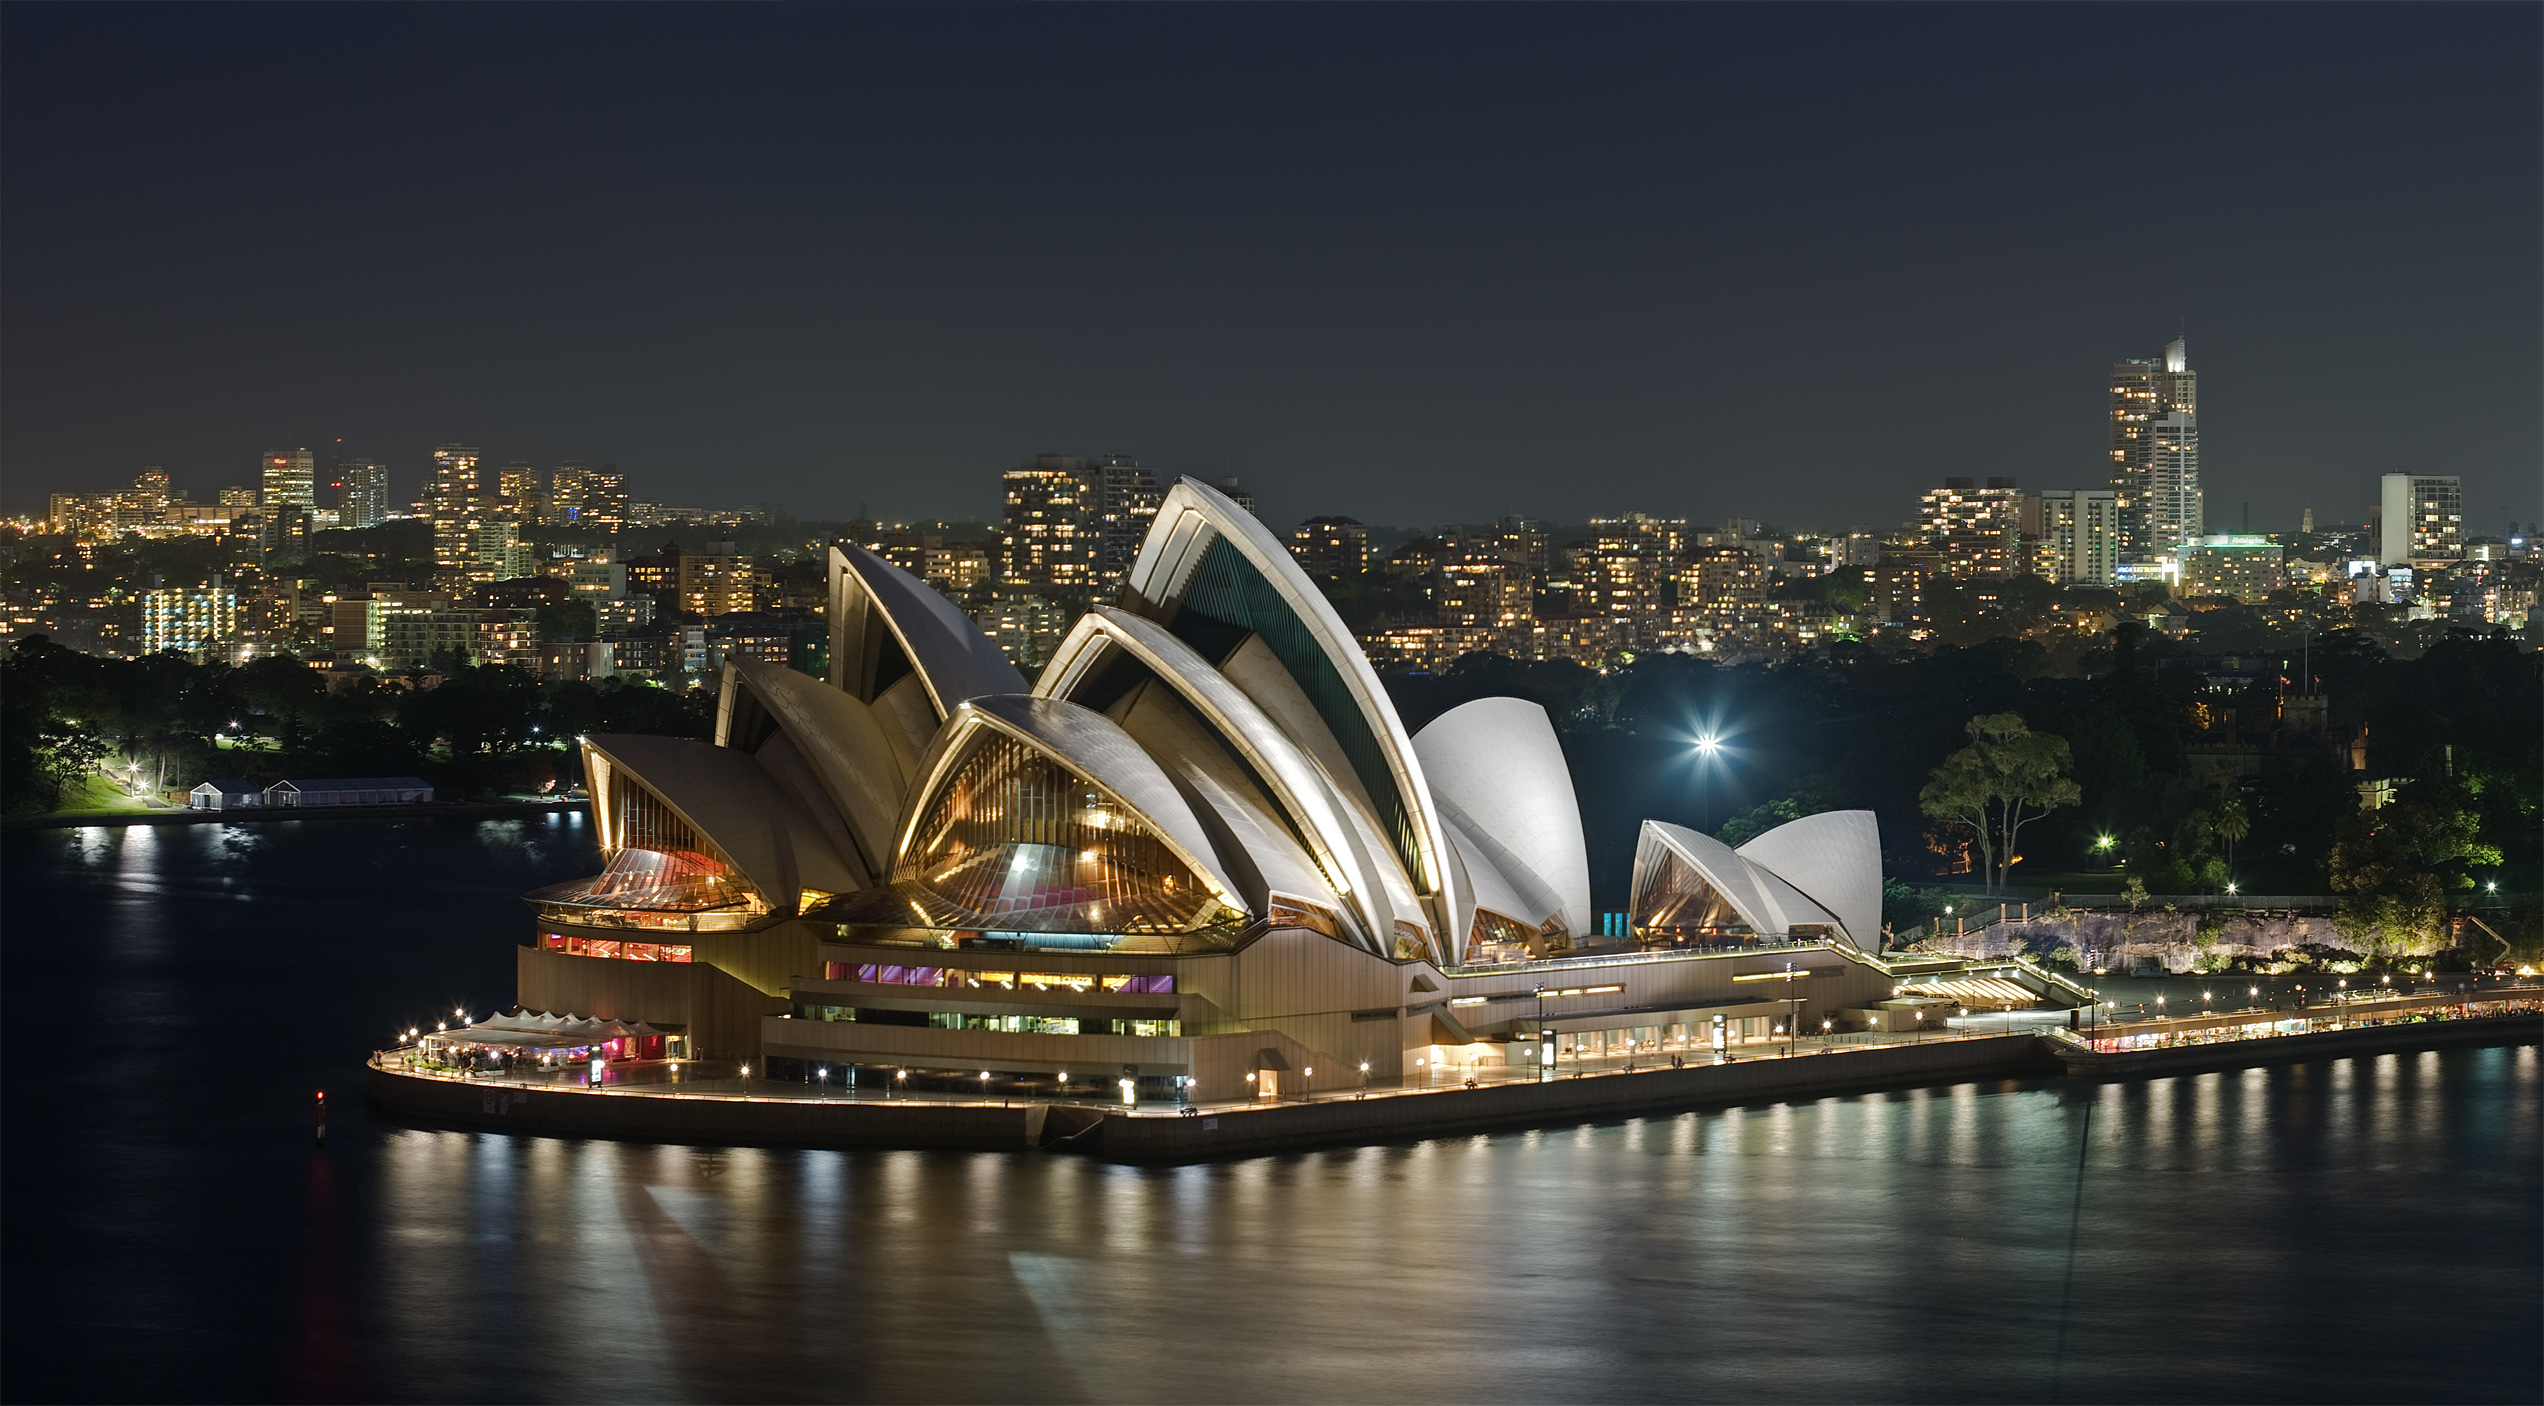 Image of the Sydney Opera House.